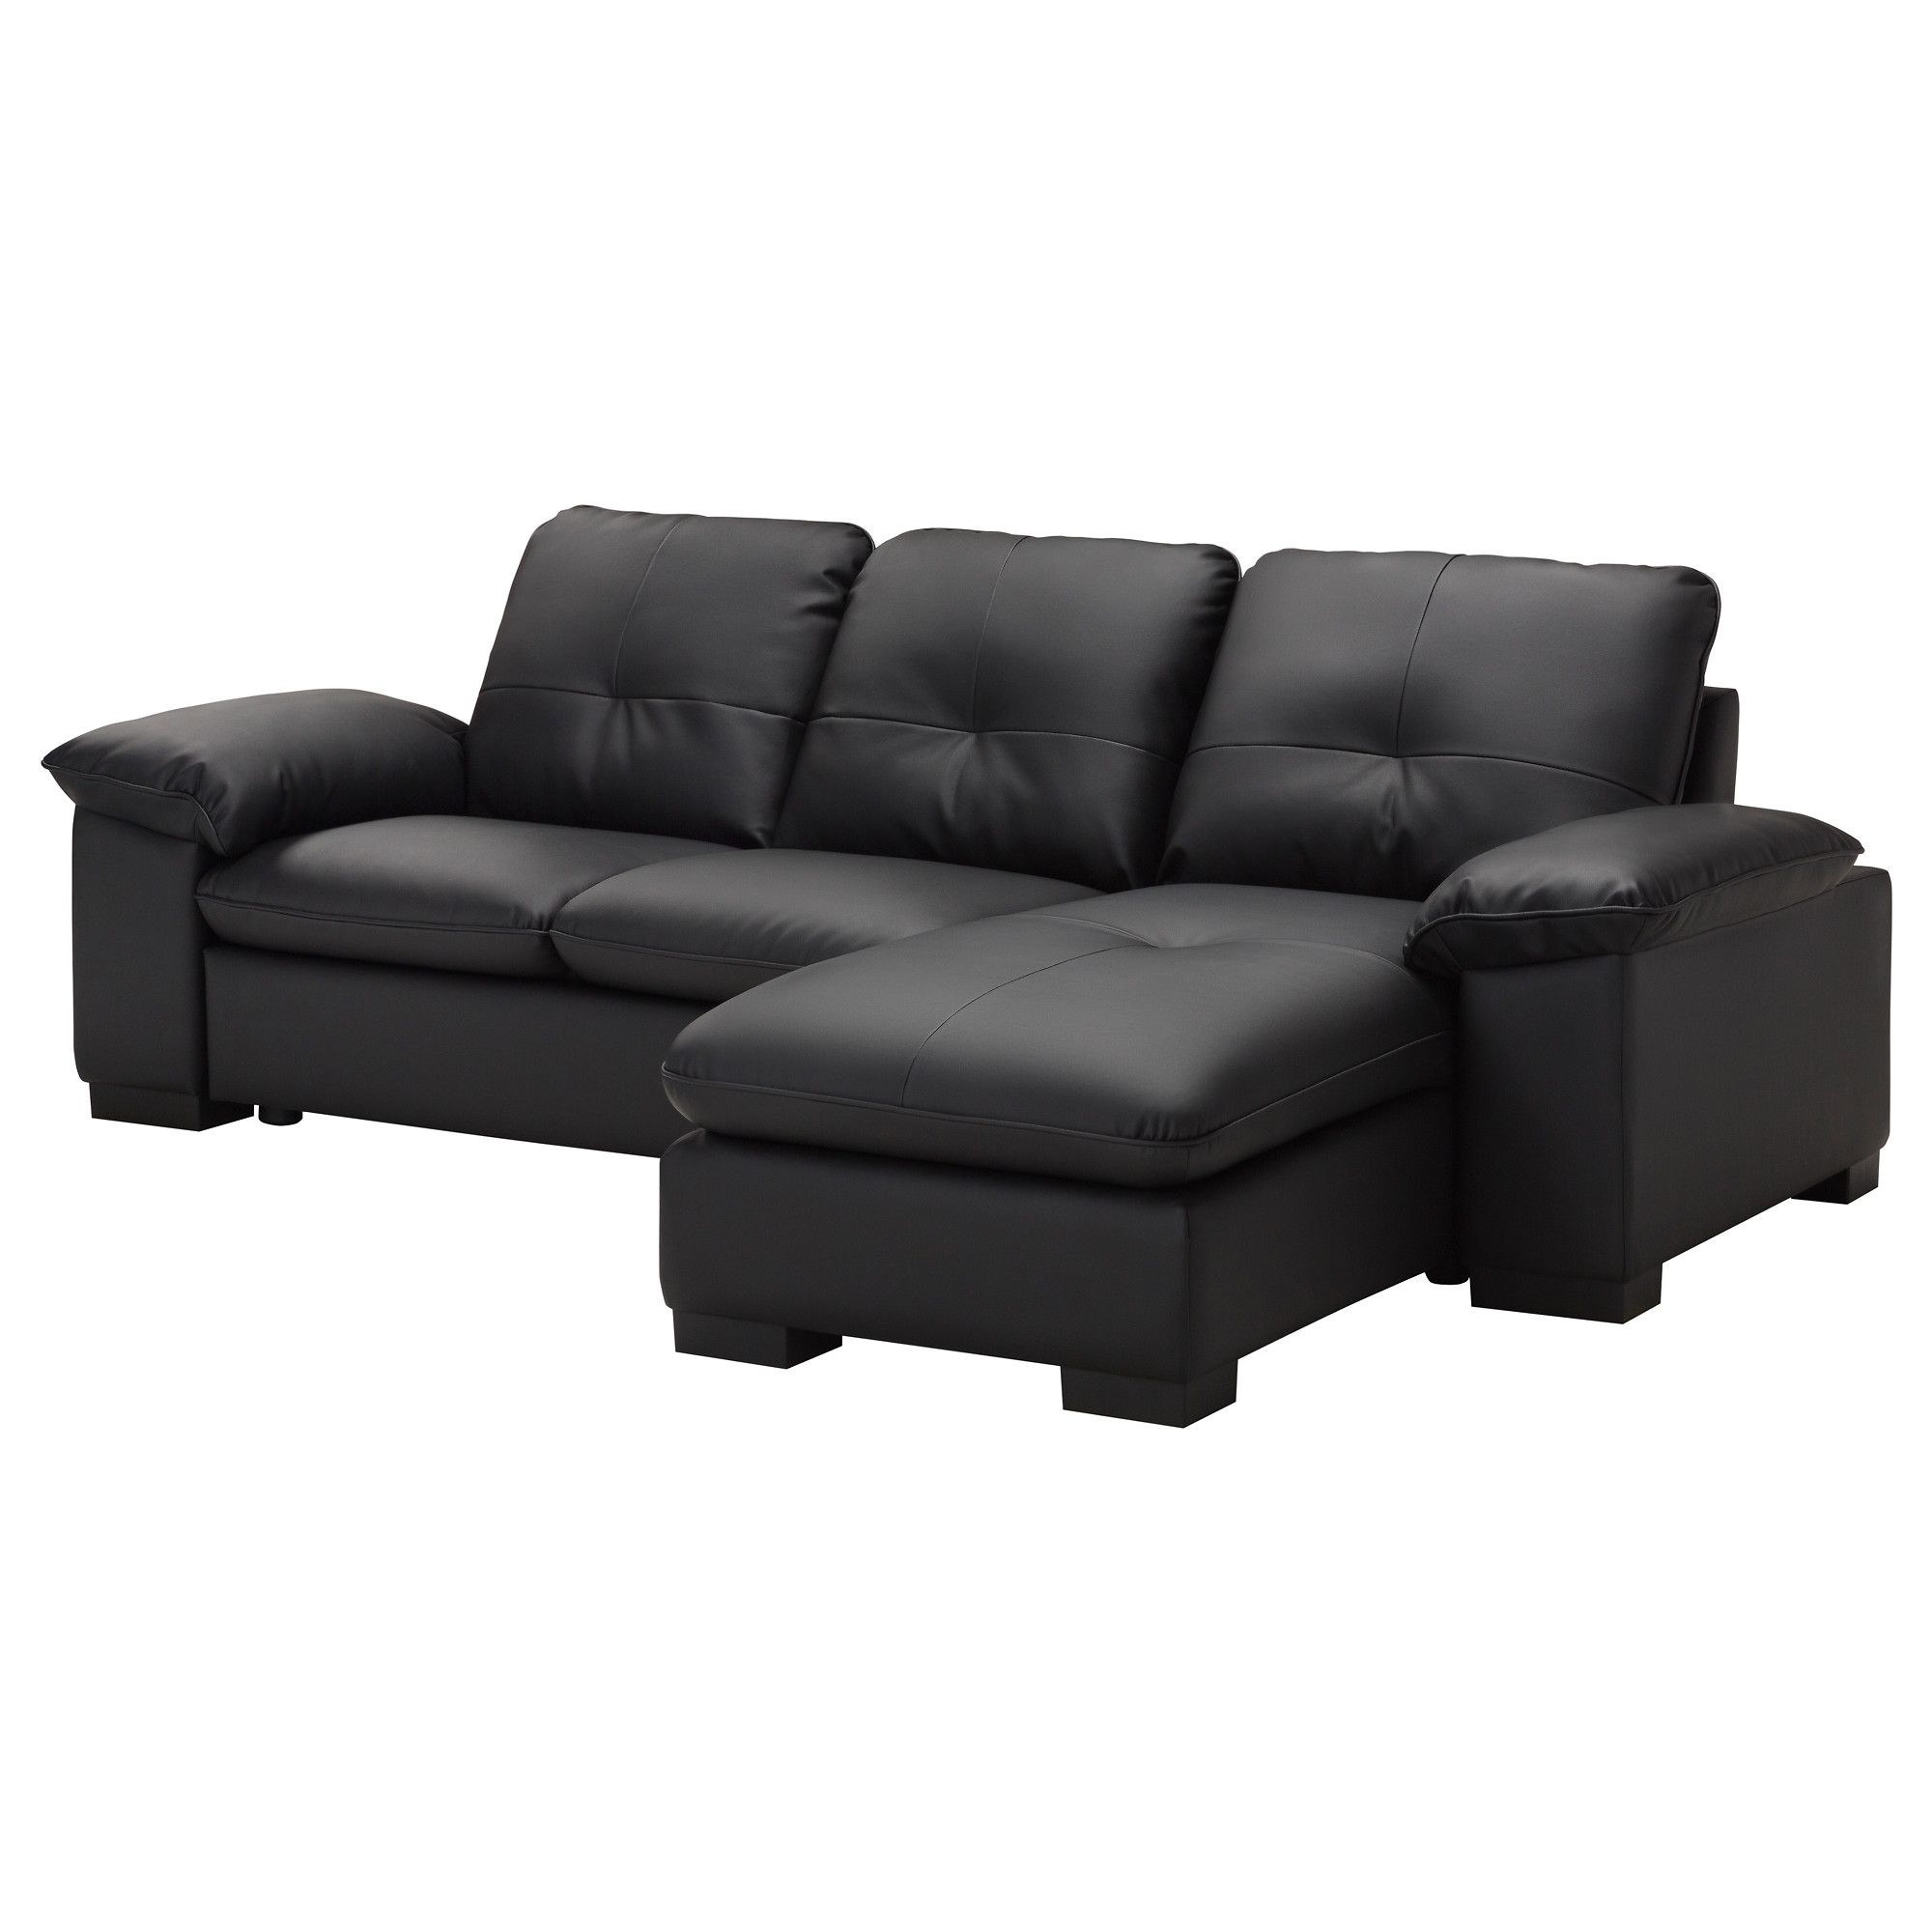 Ikea Us Furniture And Home Furnishings Ikea Seat Cushions Love Seat Faux Leather Sofa